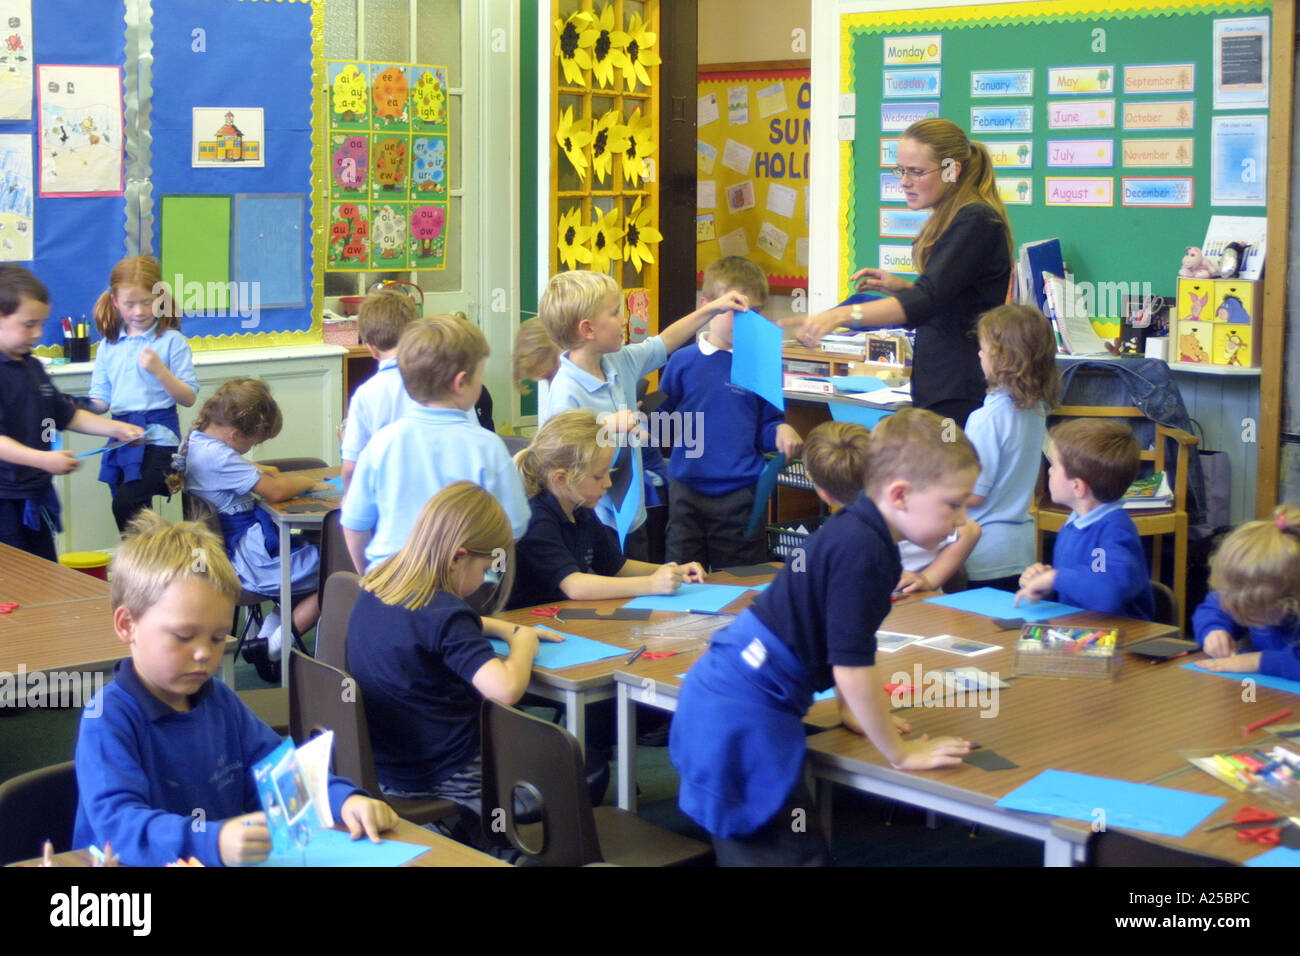 First Year 5 And 6 Year Old Students In Classroom With